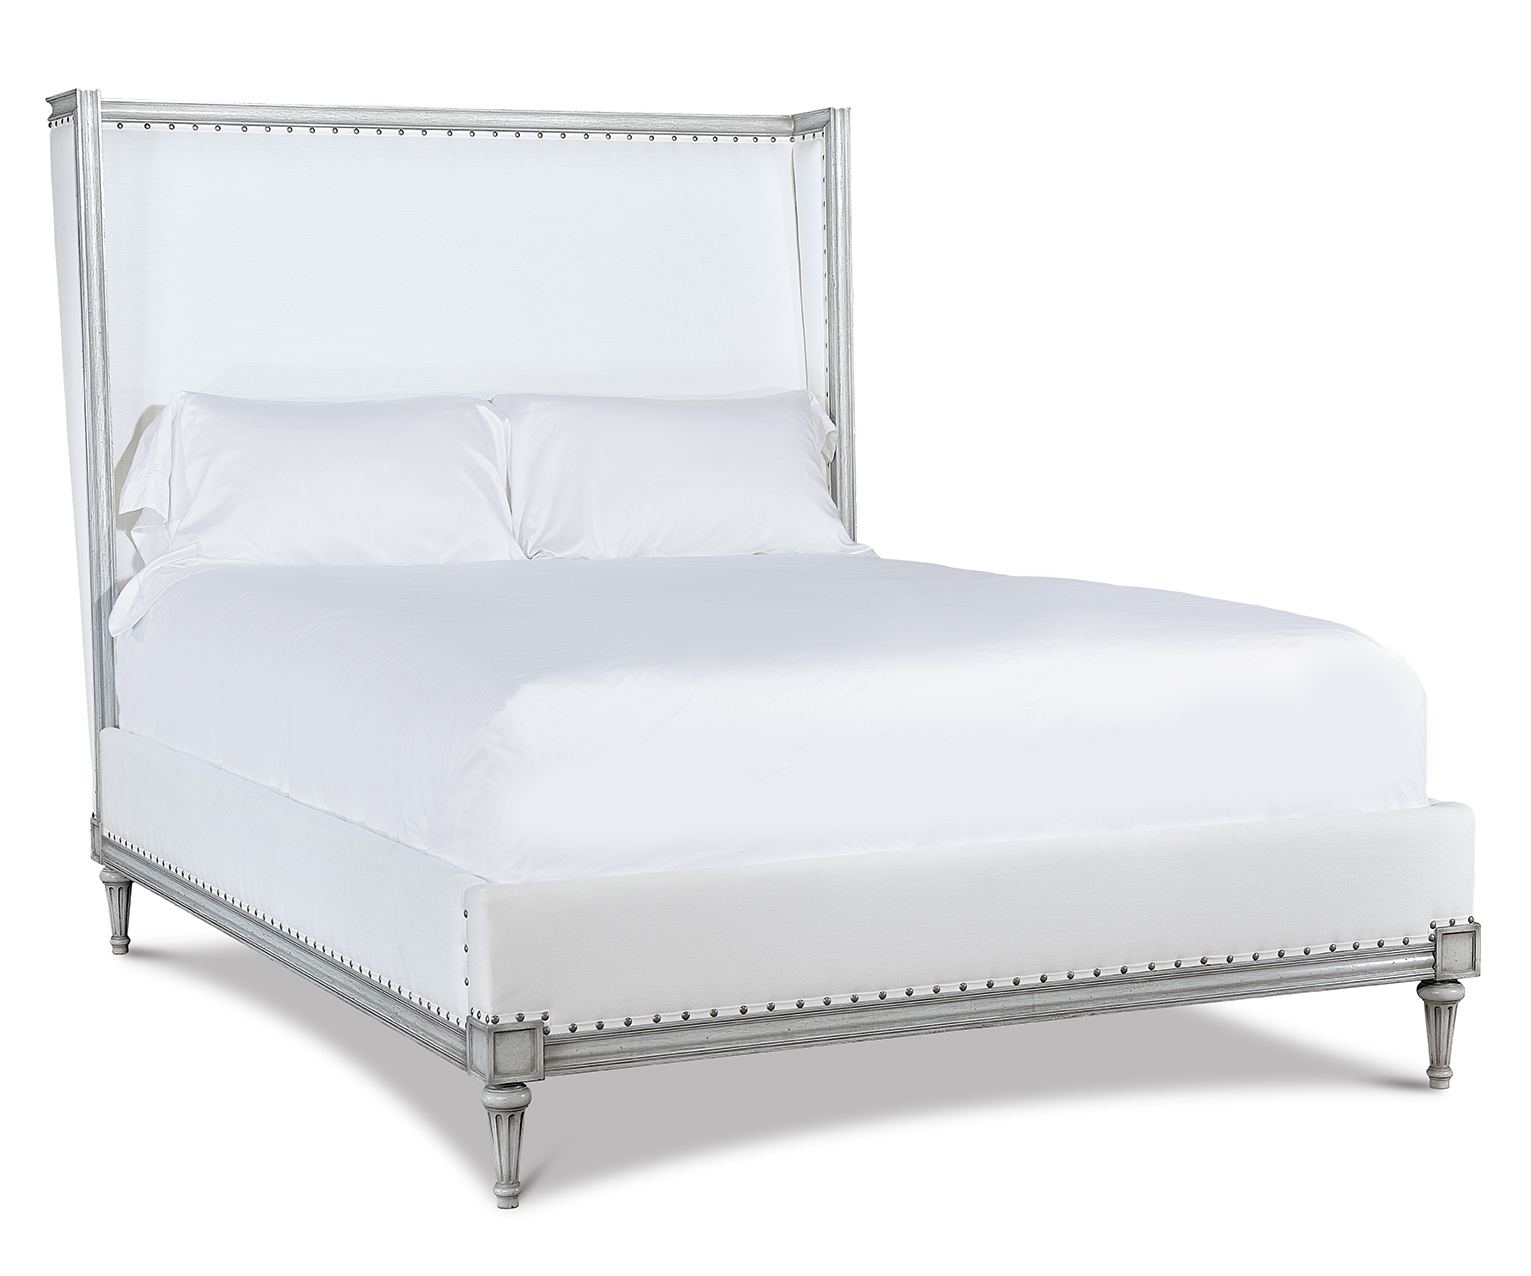 MONTLAUR BED KING